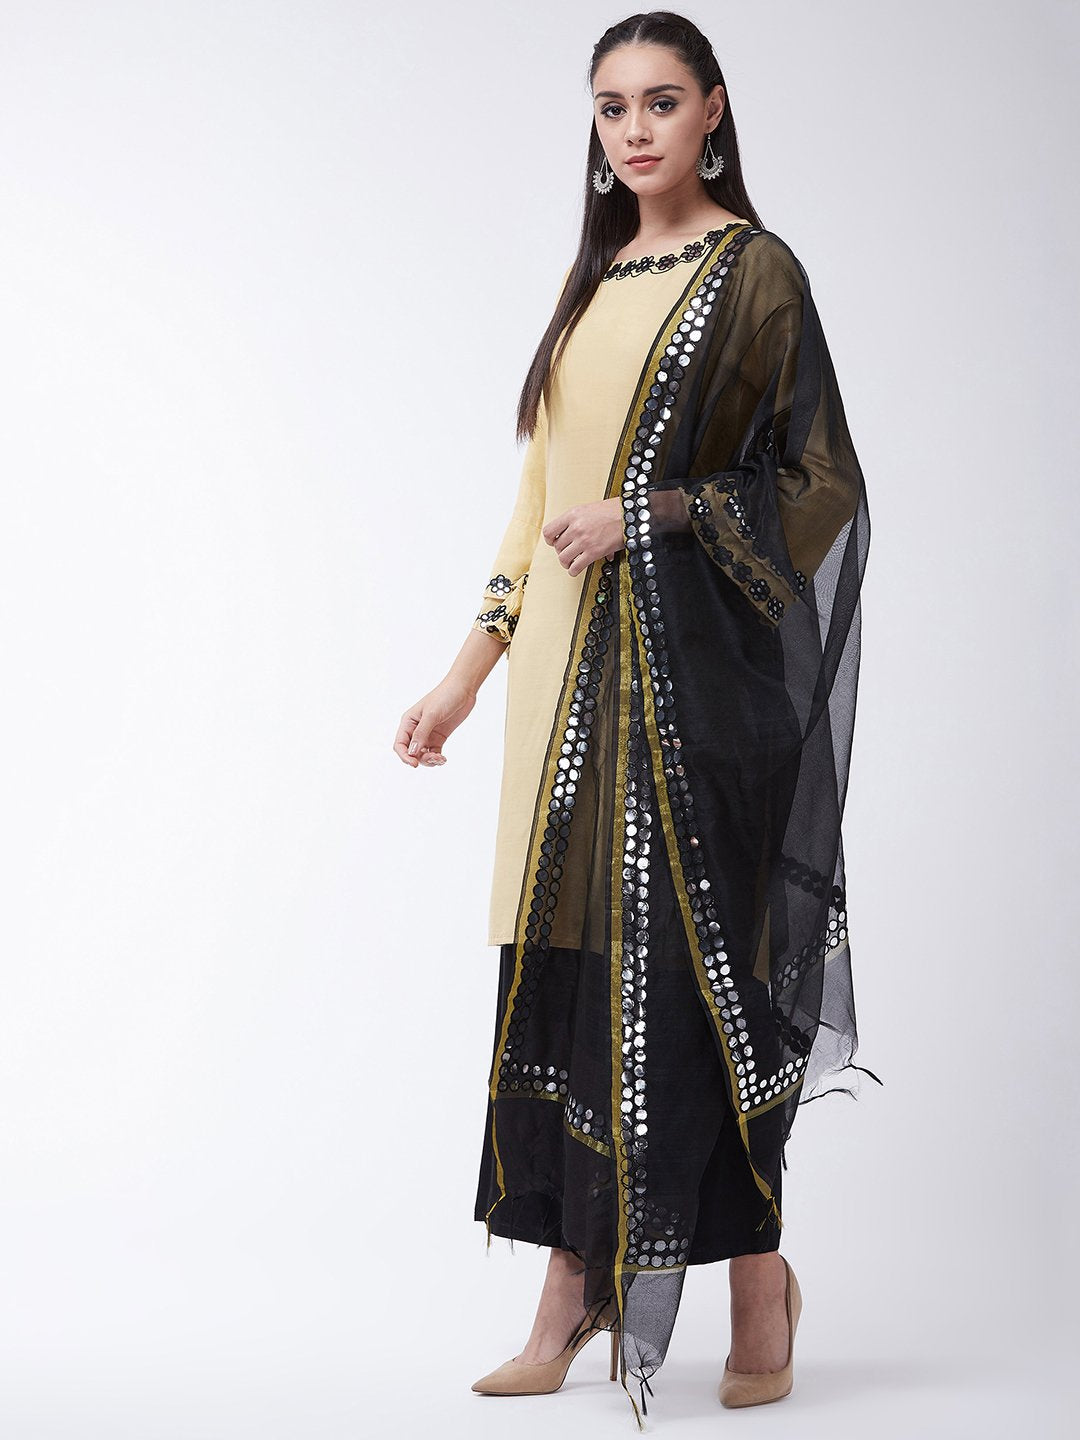 Mirror Work Beige Kurta With Black Dupatta And Palazo